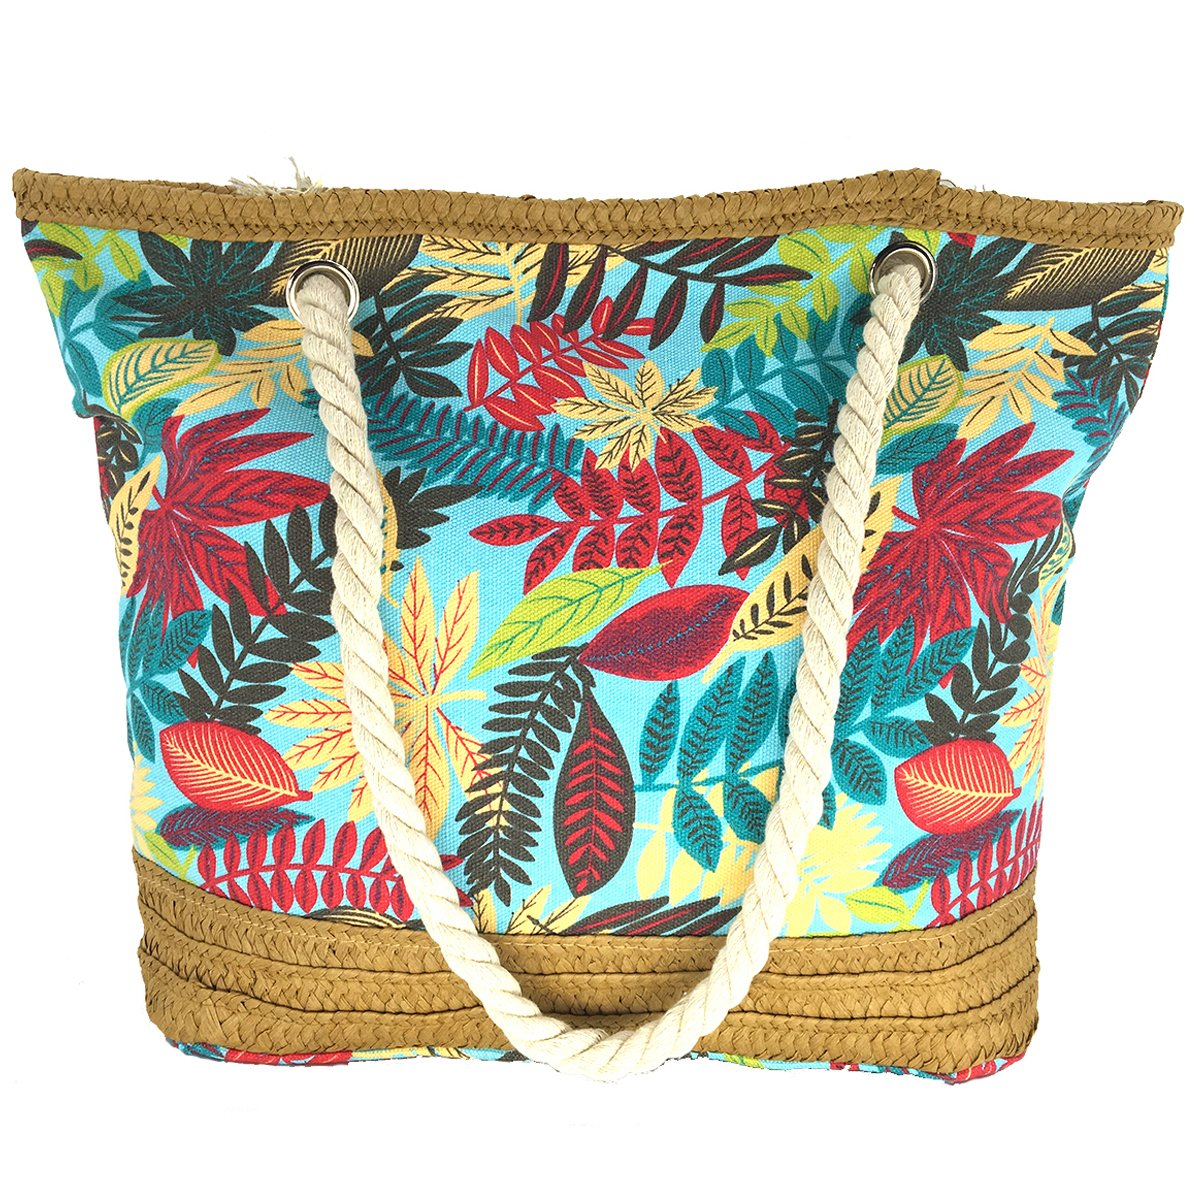 MeliMe X-Large Travel Shoulder Beach Tote Bag with Handmade Woven Straw Binding, Cotton Rope Handles, Waterproof Lining and a pocket inside. (Style 05)